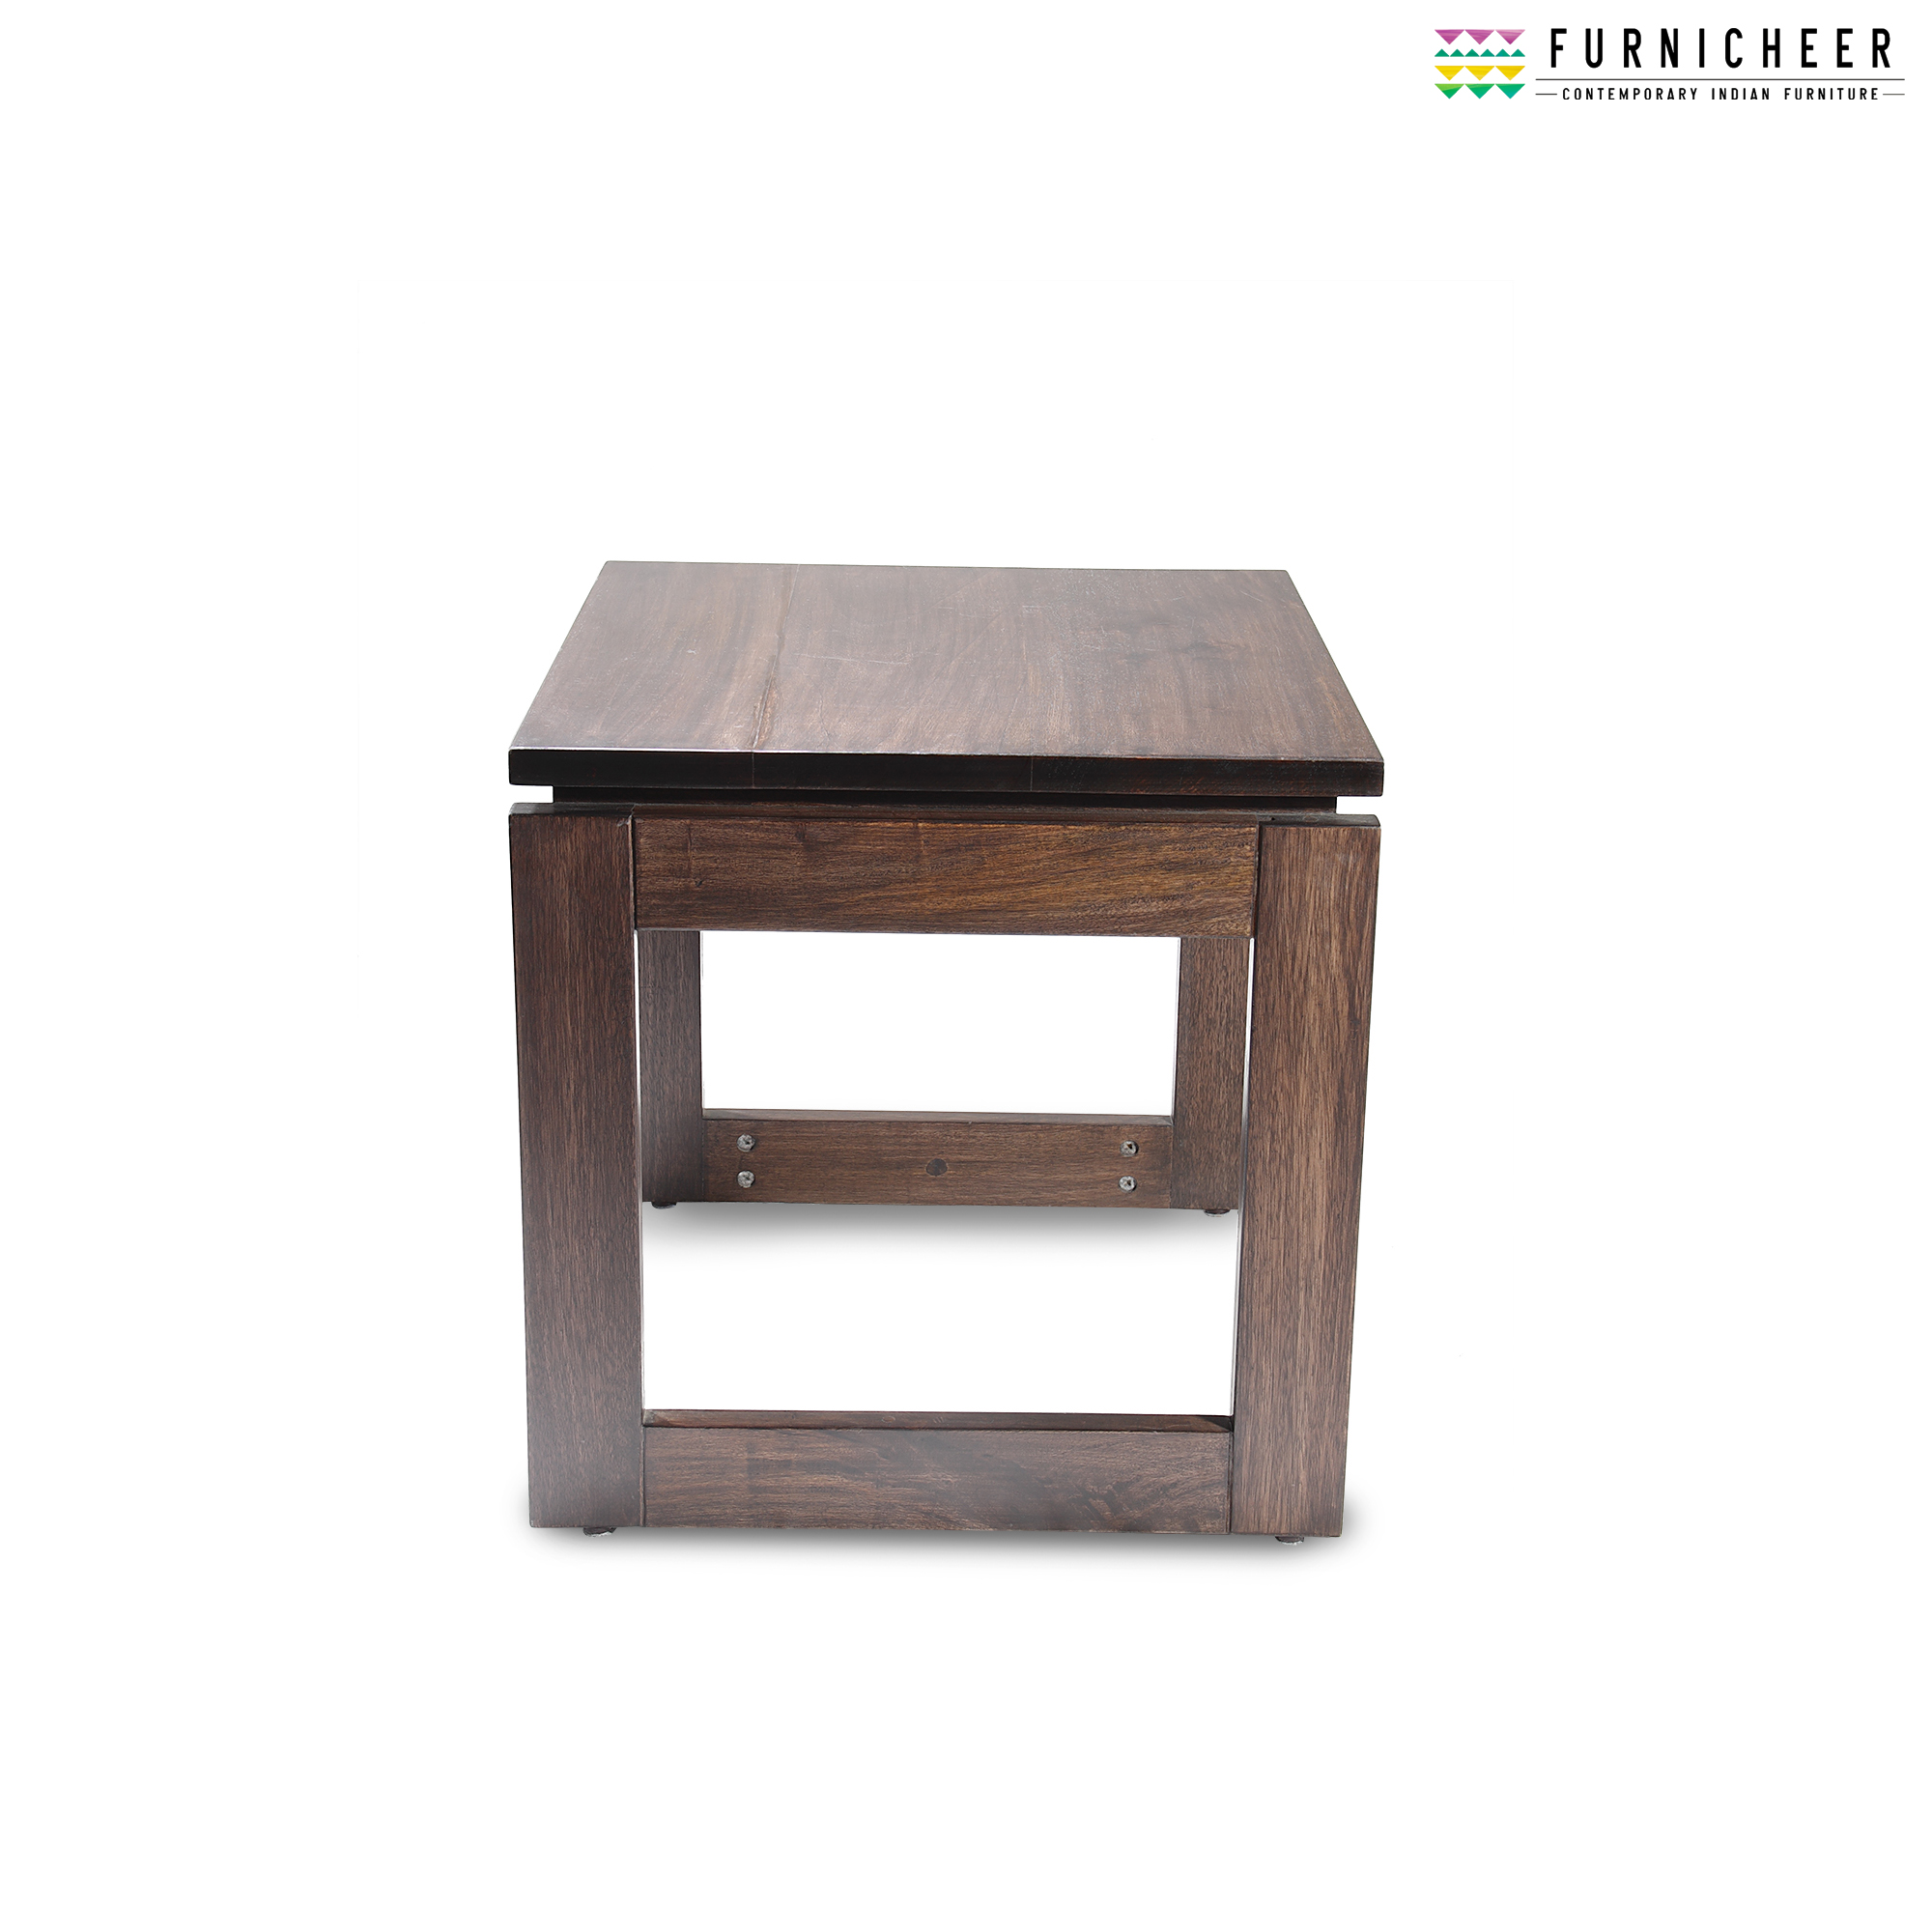 2.SIDE & END TABLE SKU TBWL7398